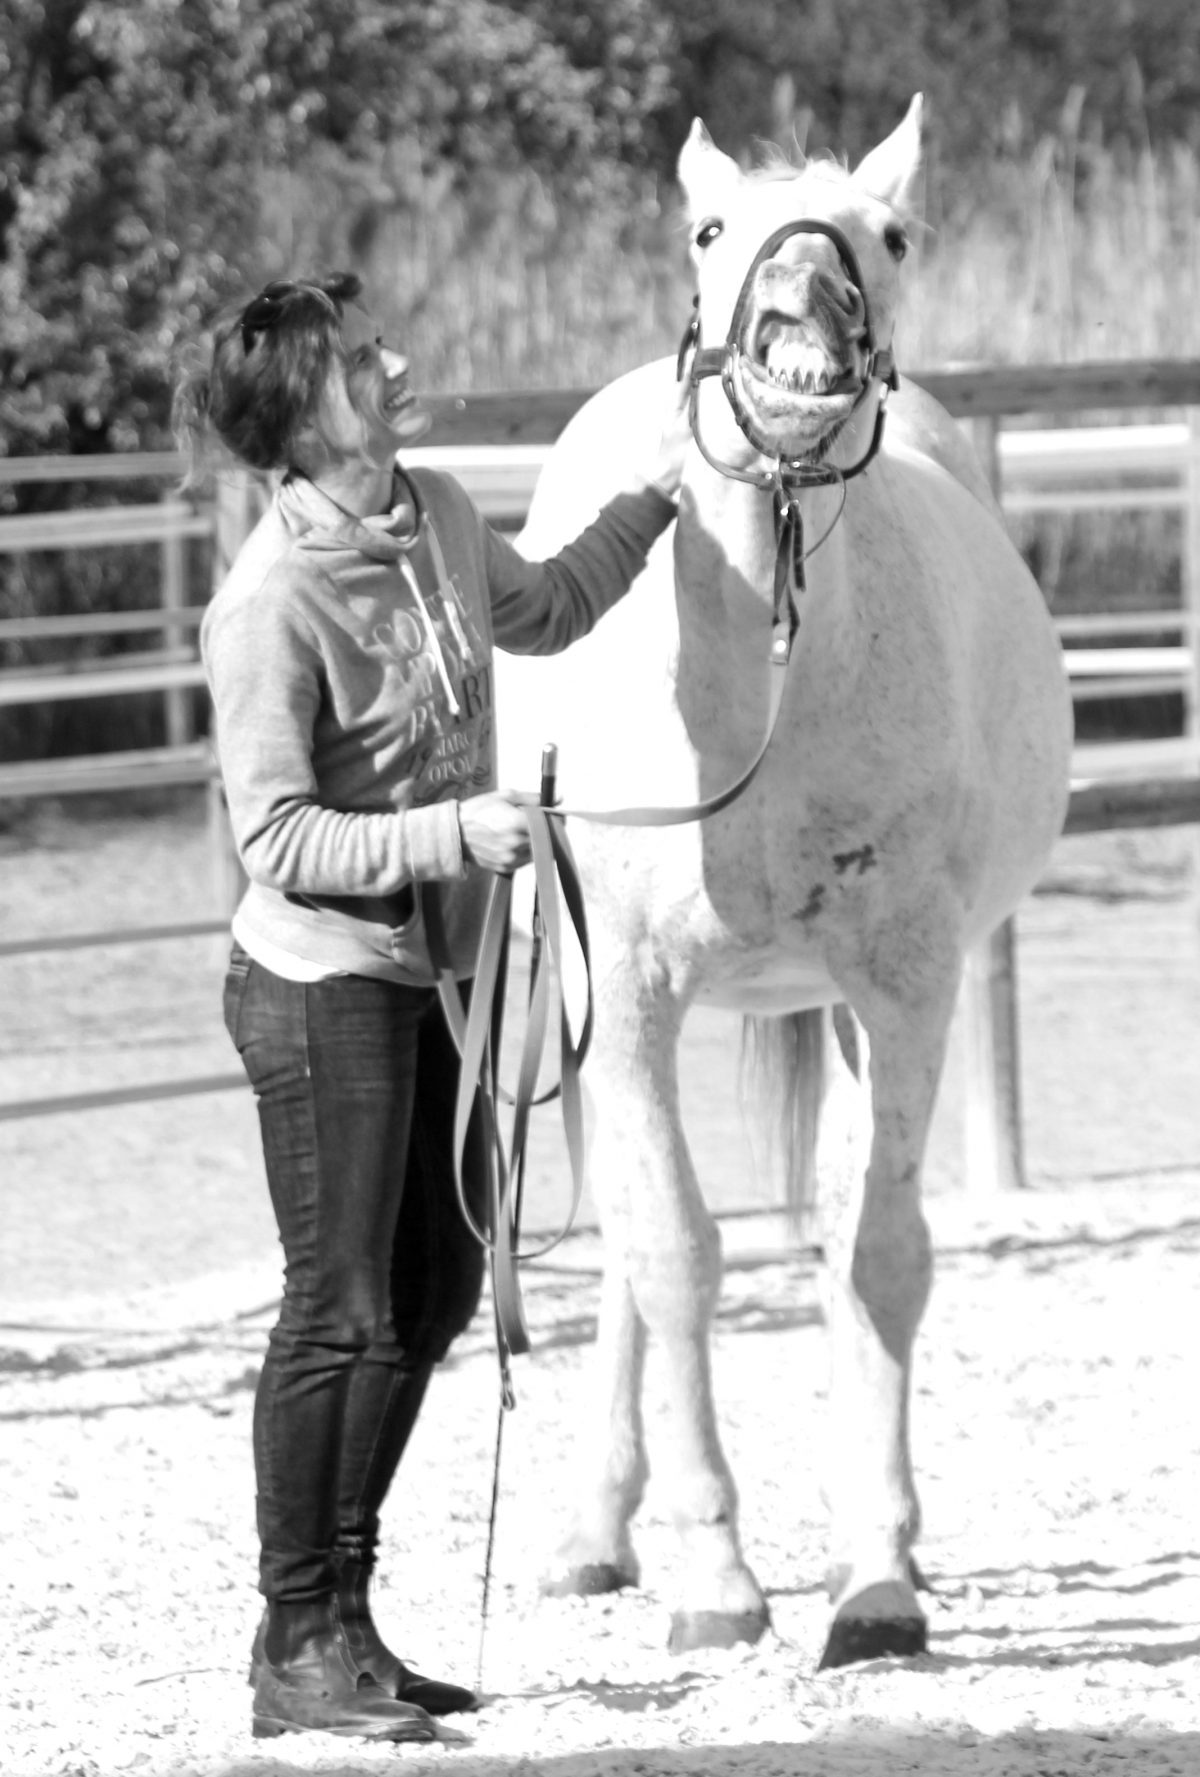 In memorial of Daria (1987-2017) My soul-sister in the body of a horse.